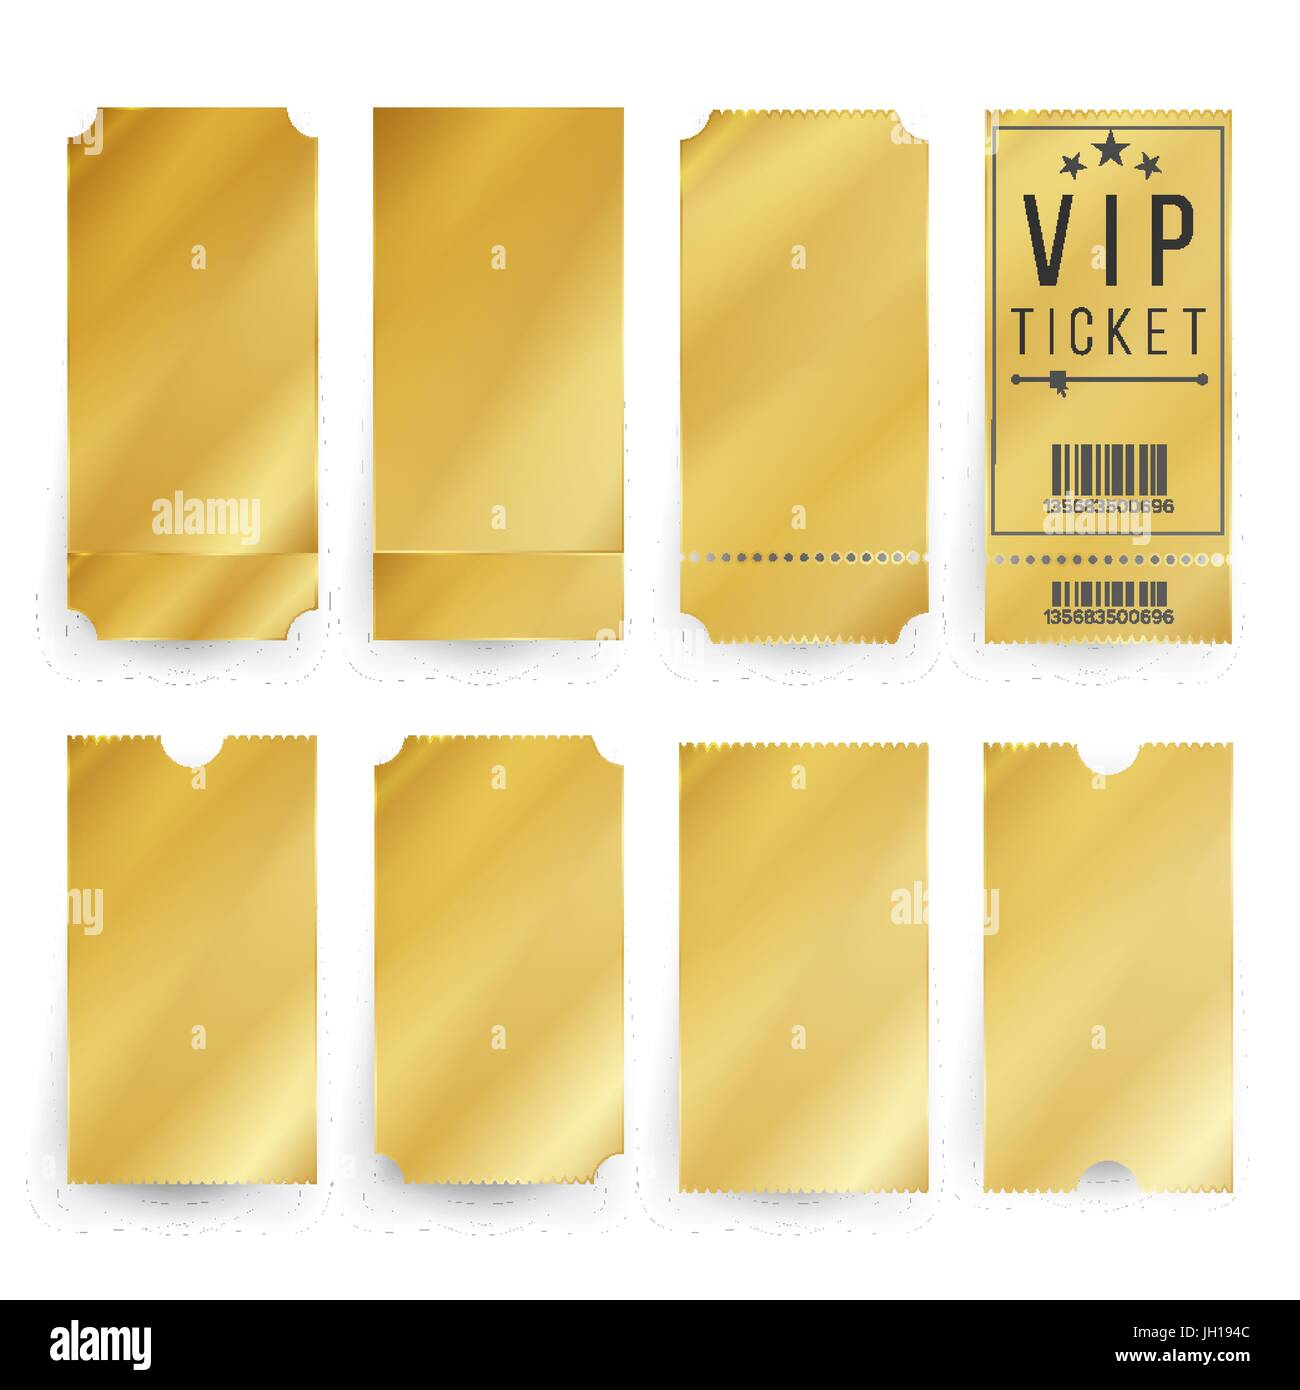 Vip Ticket Template Vector. Empty Golden Tickets And Coupons Blank.  Isolated Illustration  Blank Ticket Template